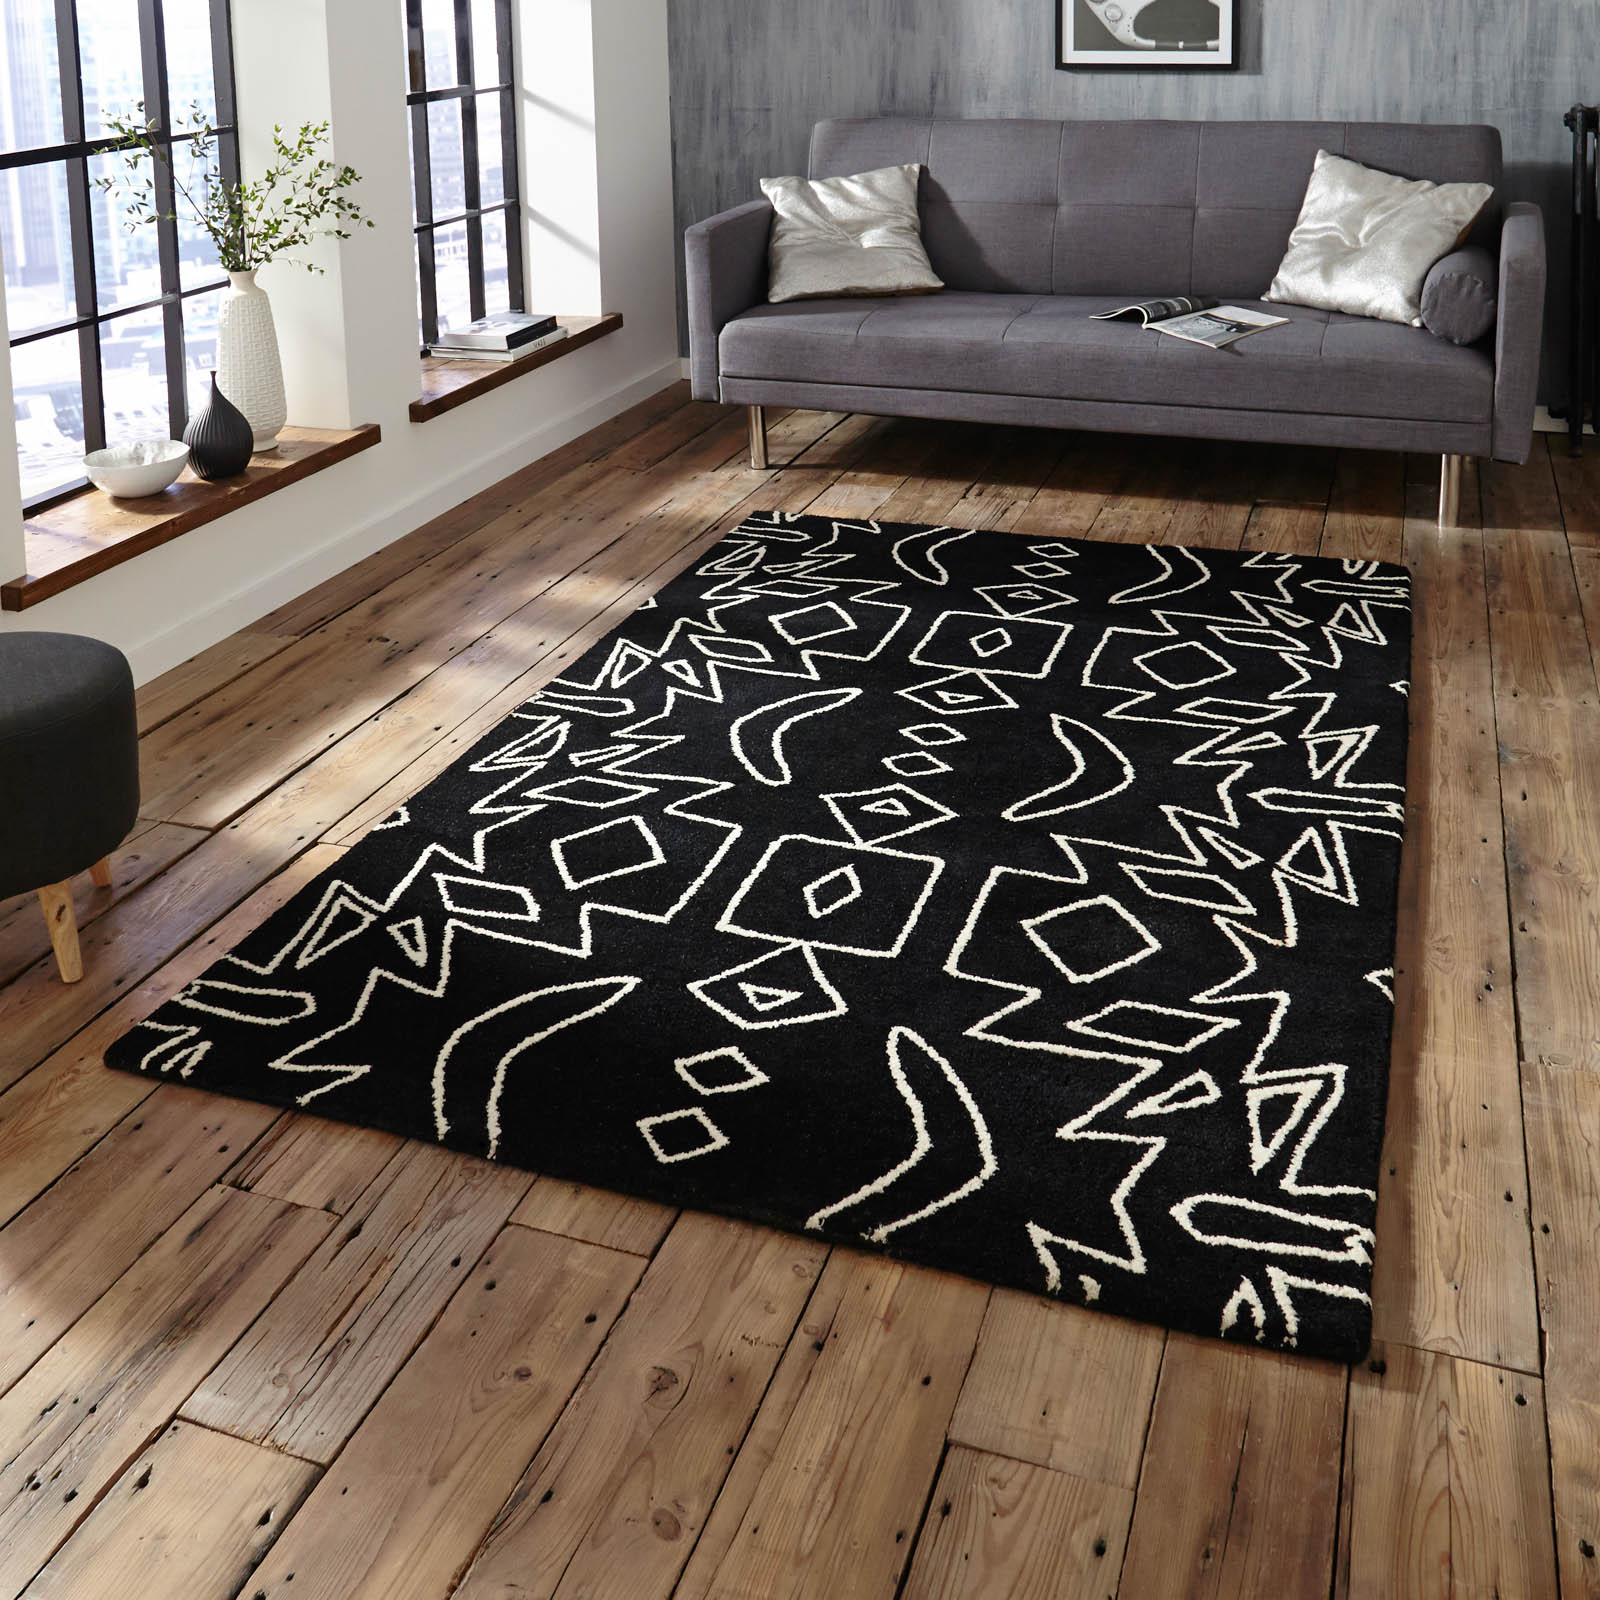 Spectrum SP41 Rugs in Black White